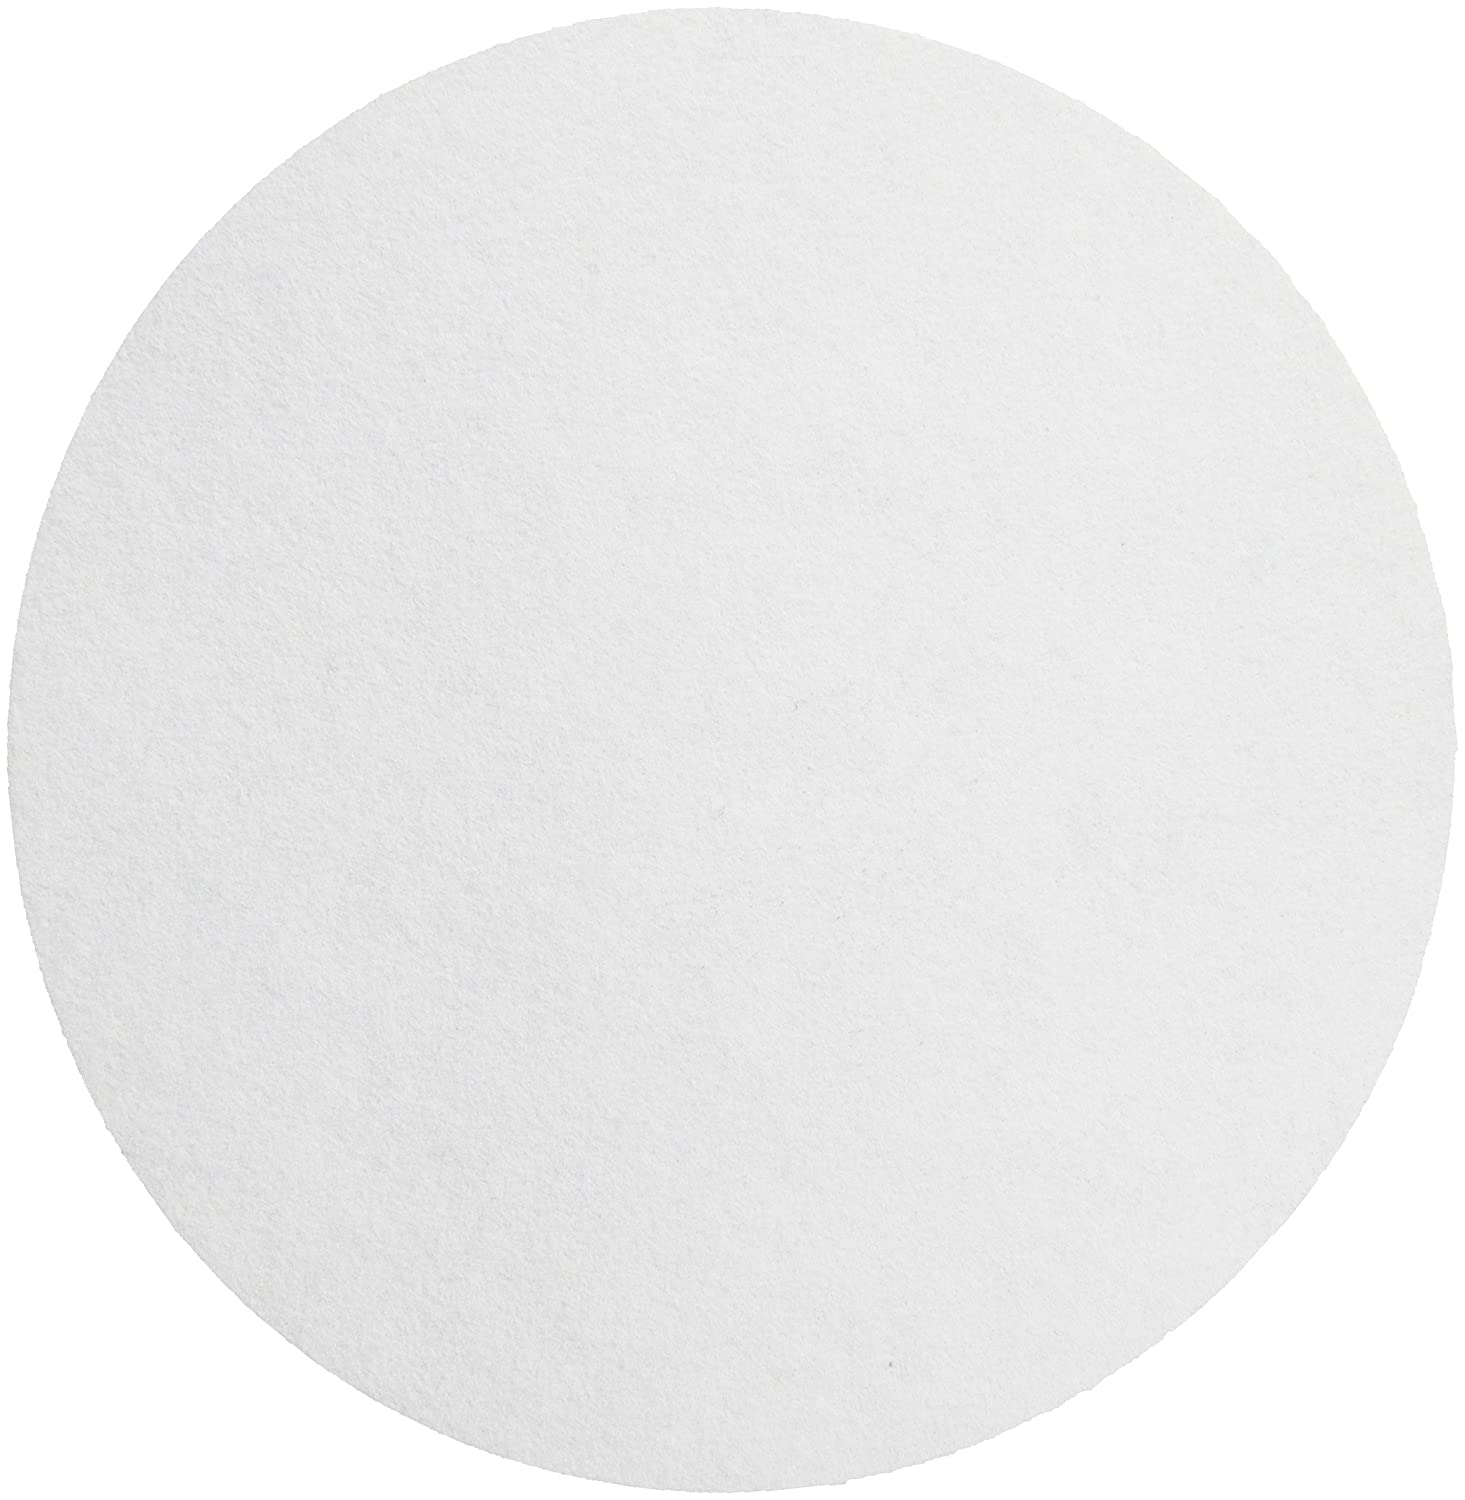 Whatman 1001-020 Quantitative-Filter-Paper (Pack of 400) GE Healthcare F1000-03A